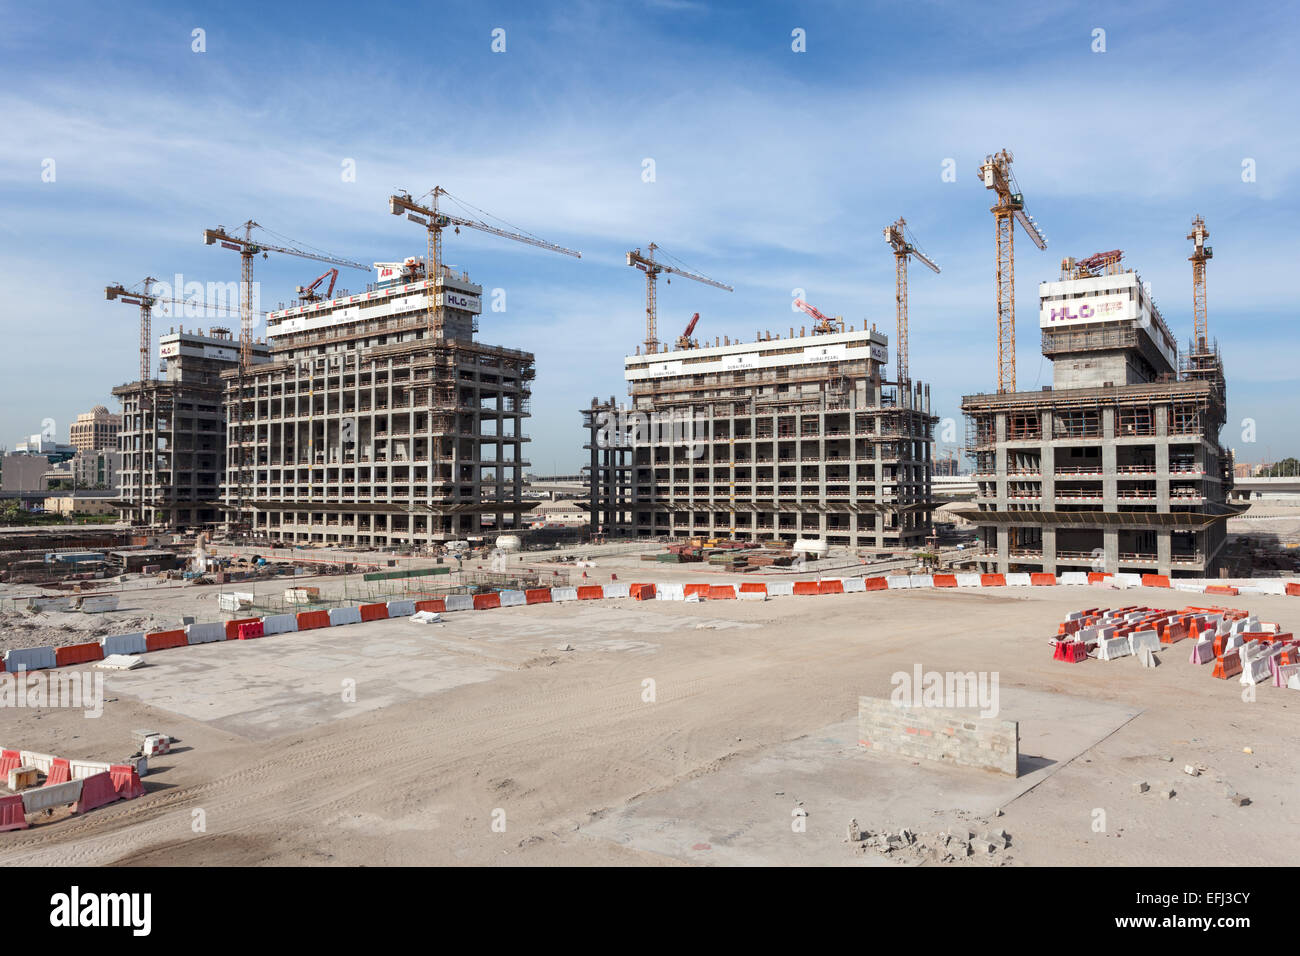 Dubai Landmark The Frame Stockfotos & Dubai Landmark The Frame ...